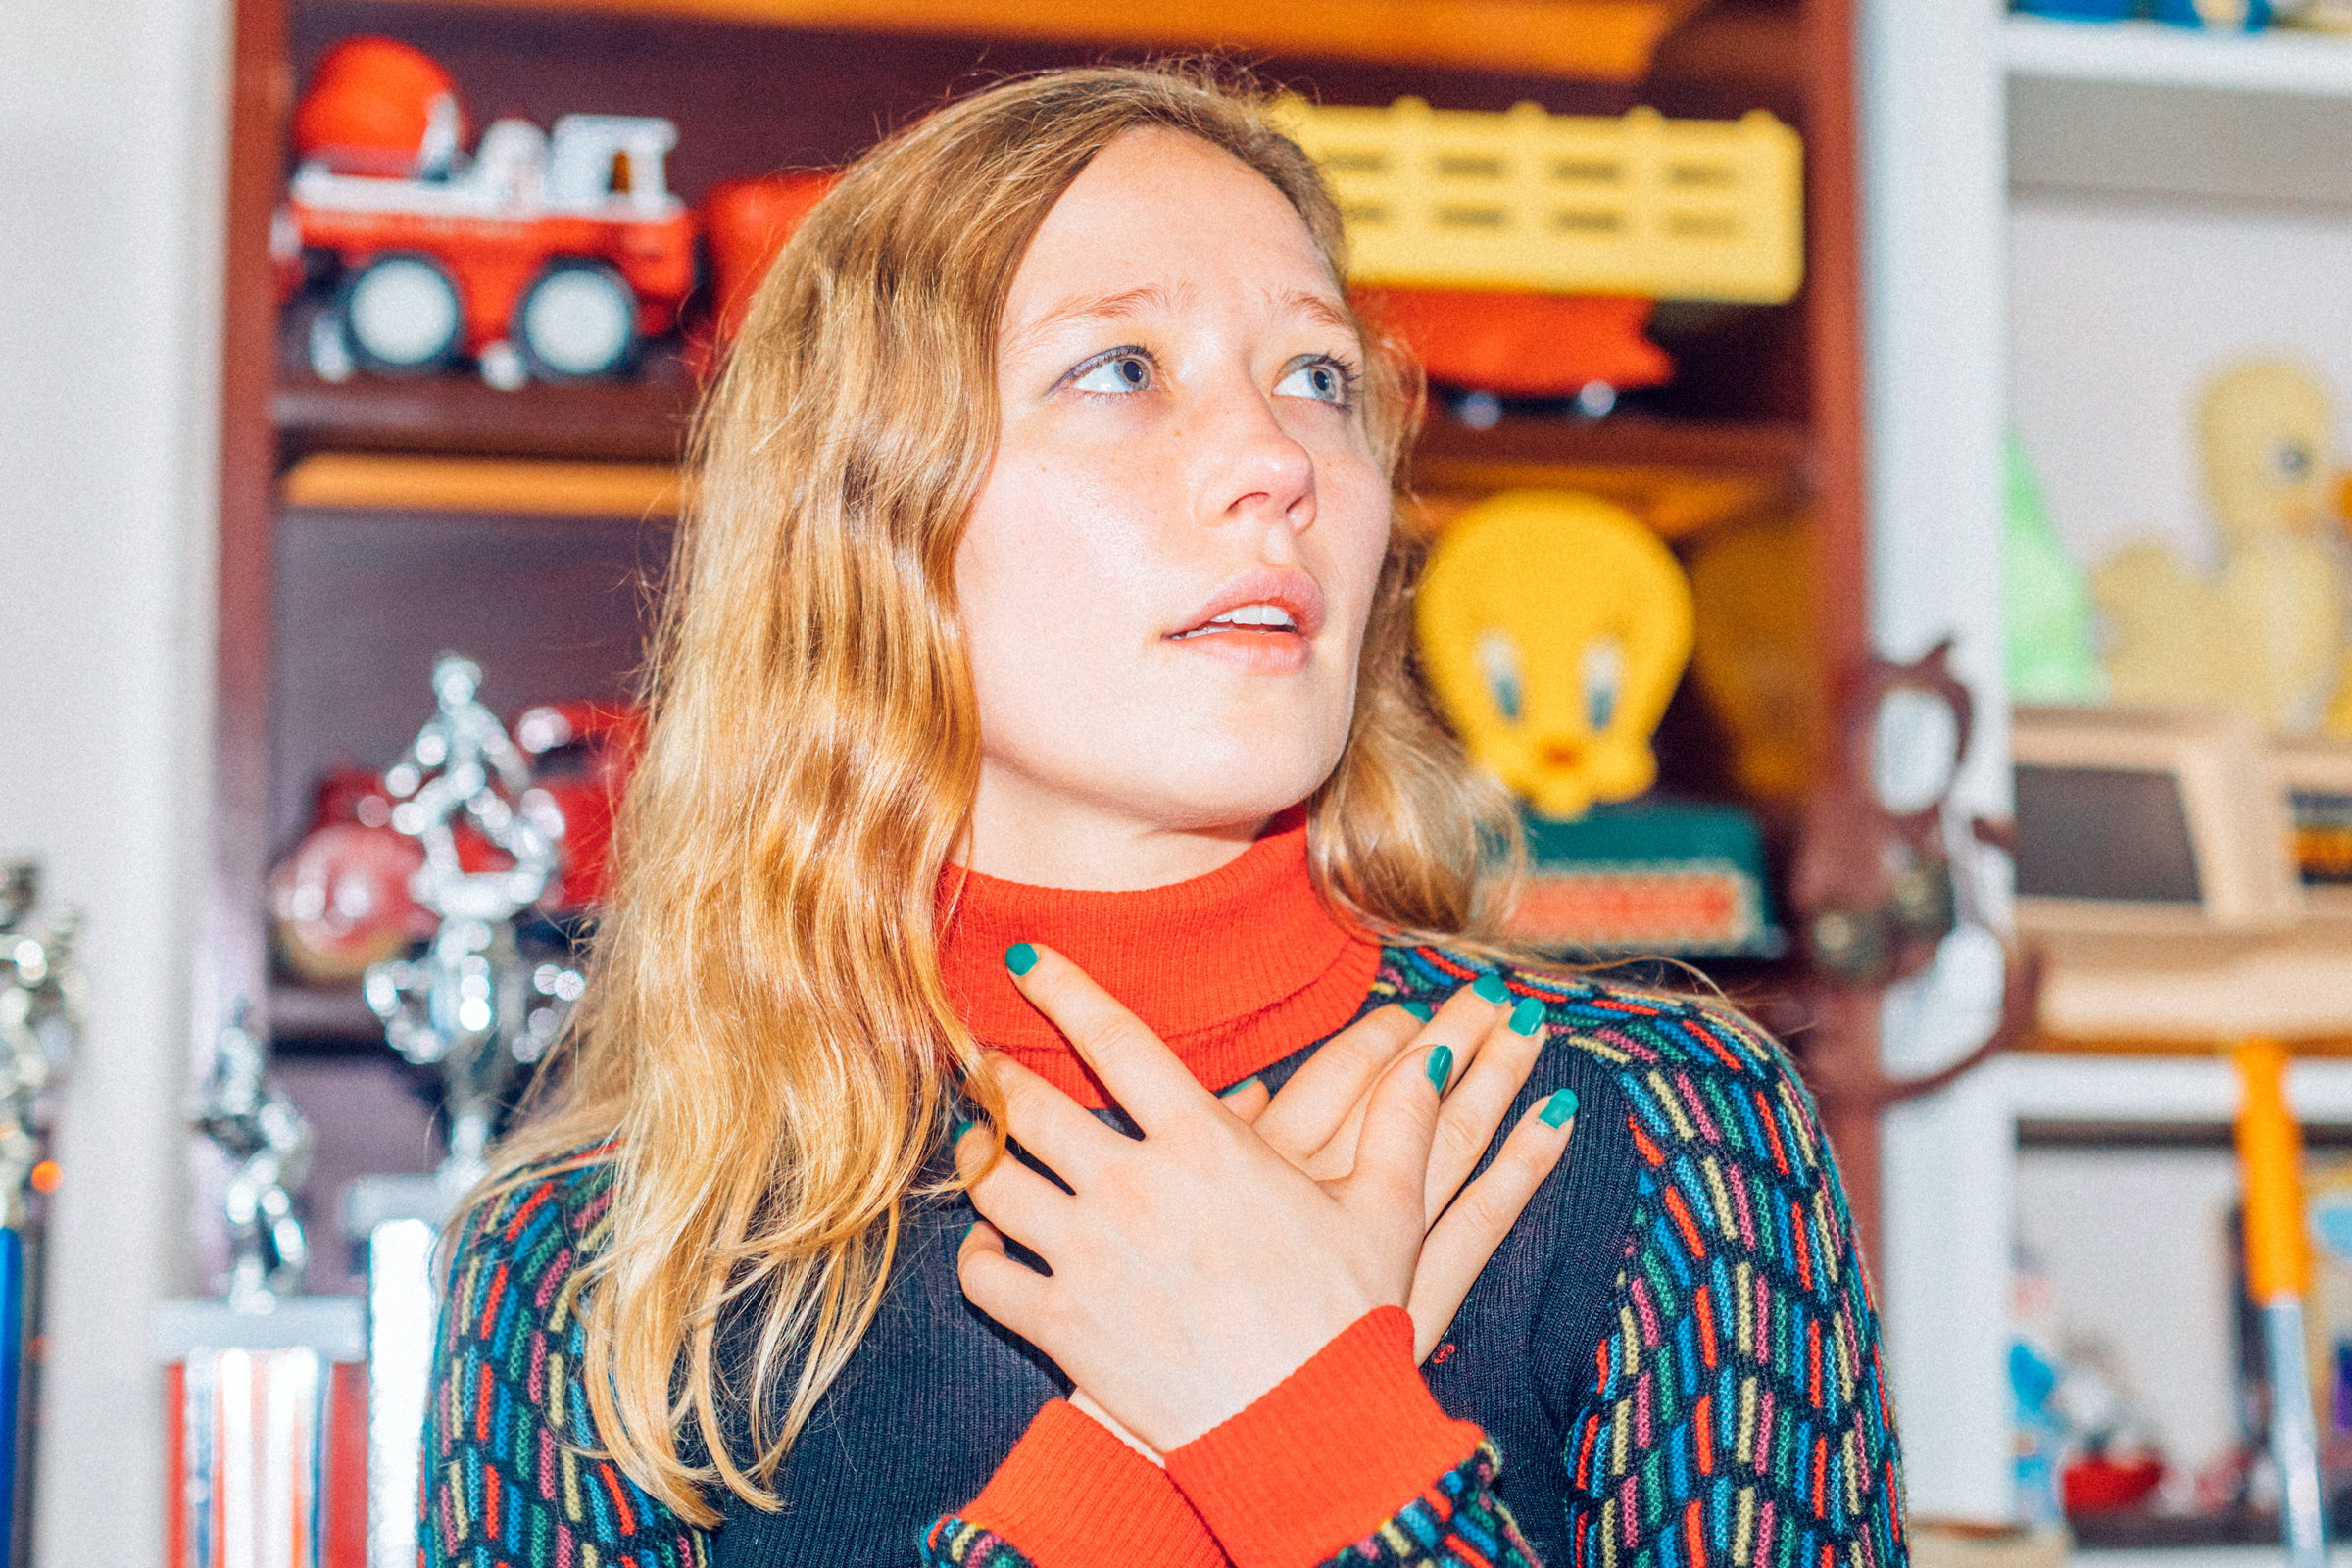 Review: Aussie Singer-Songwriter Julia Jacklin Makes Her Breakthrough With 'Crushing'